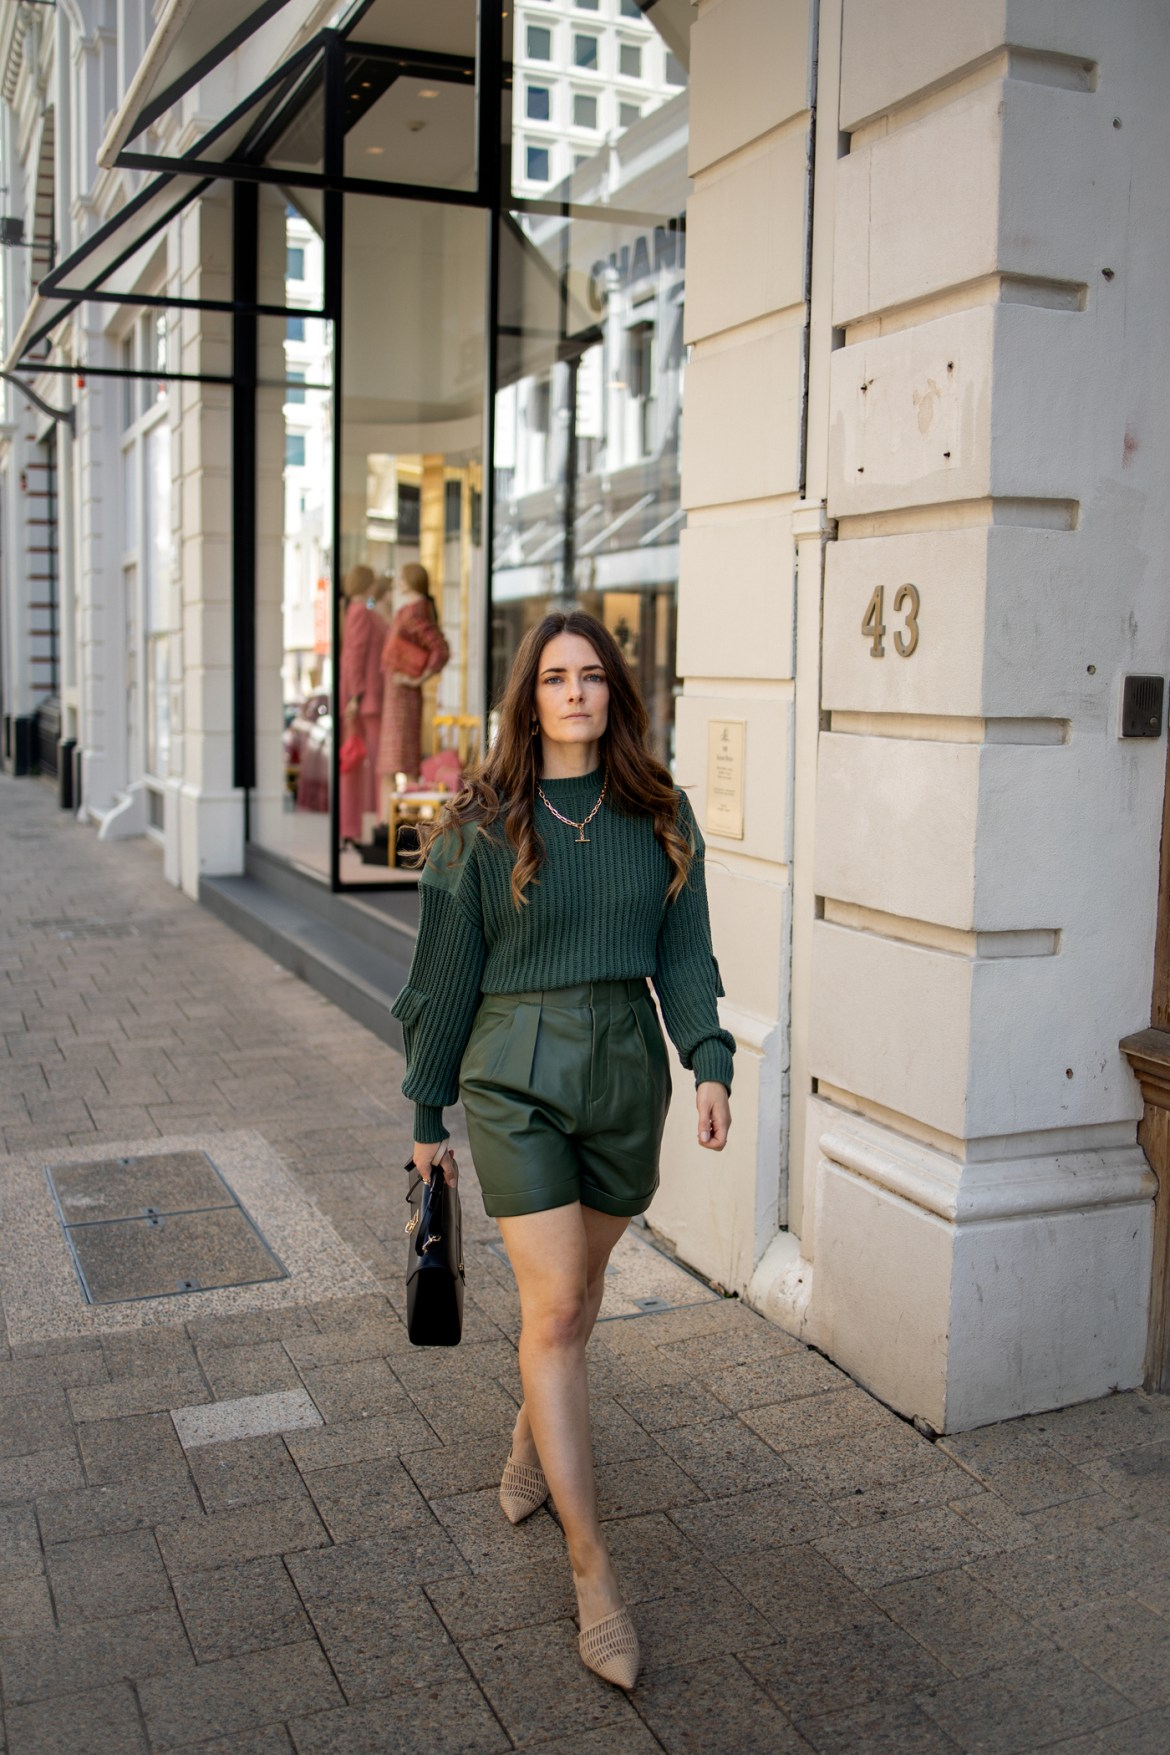 Jenelle Witty from the fashion blog Inspiring Wit shopping at Chanel